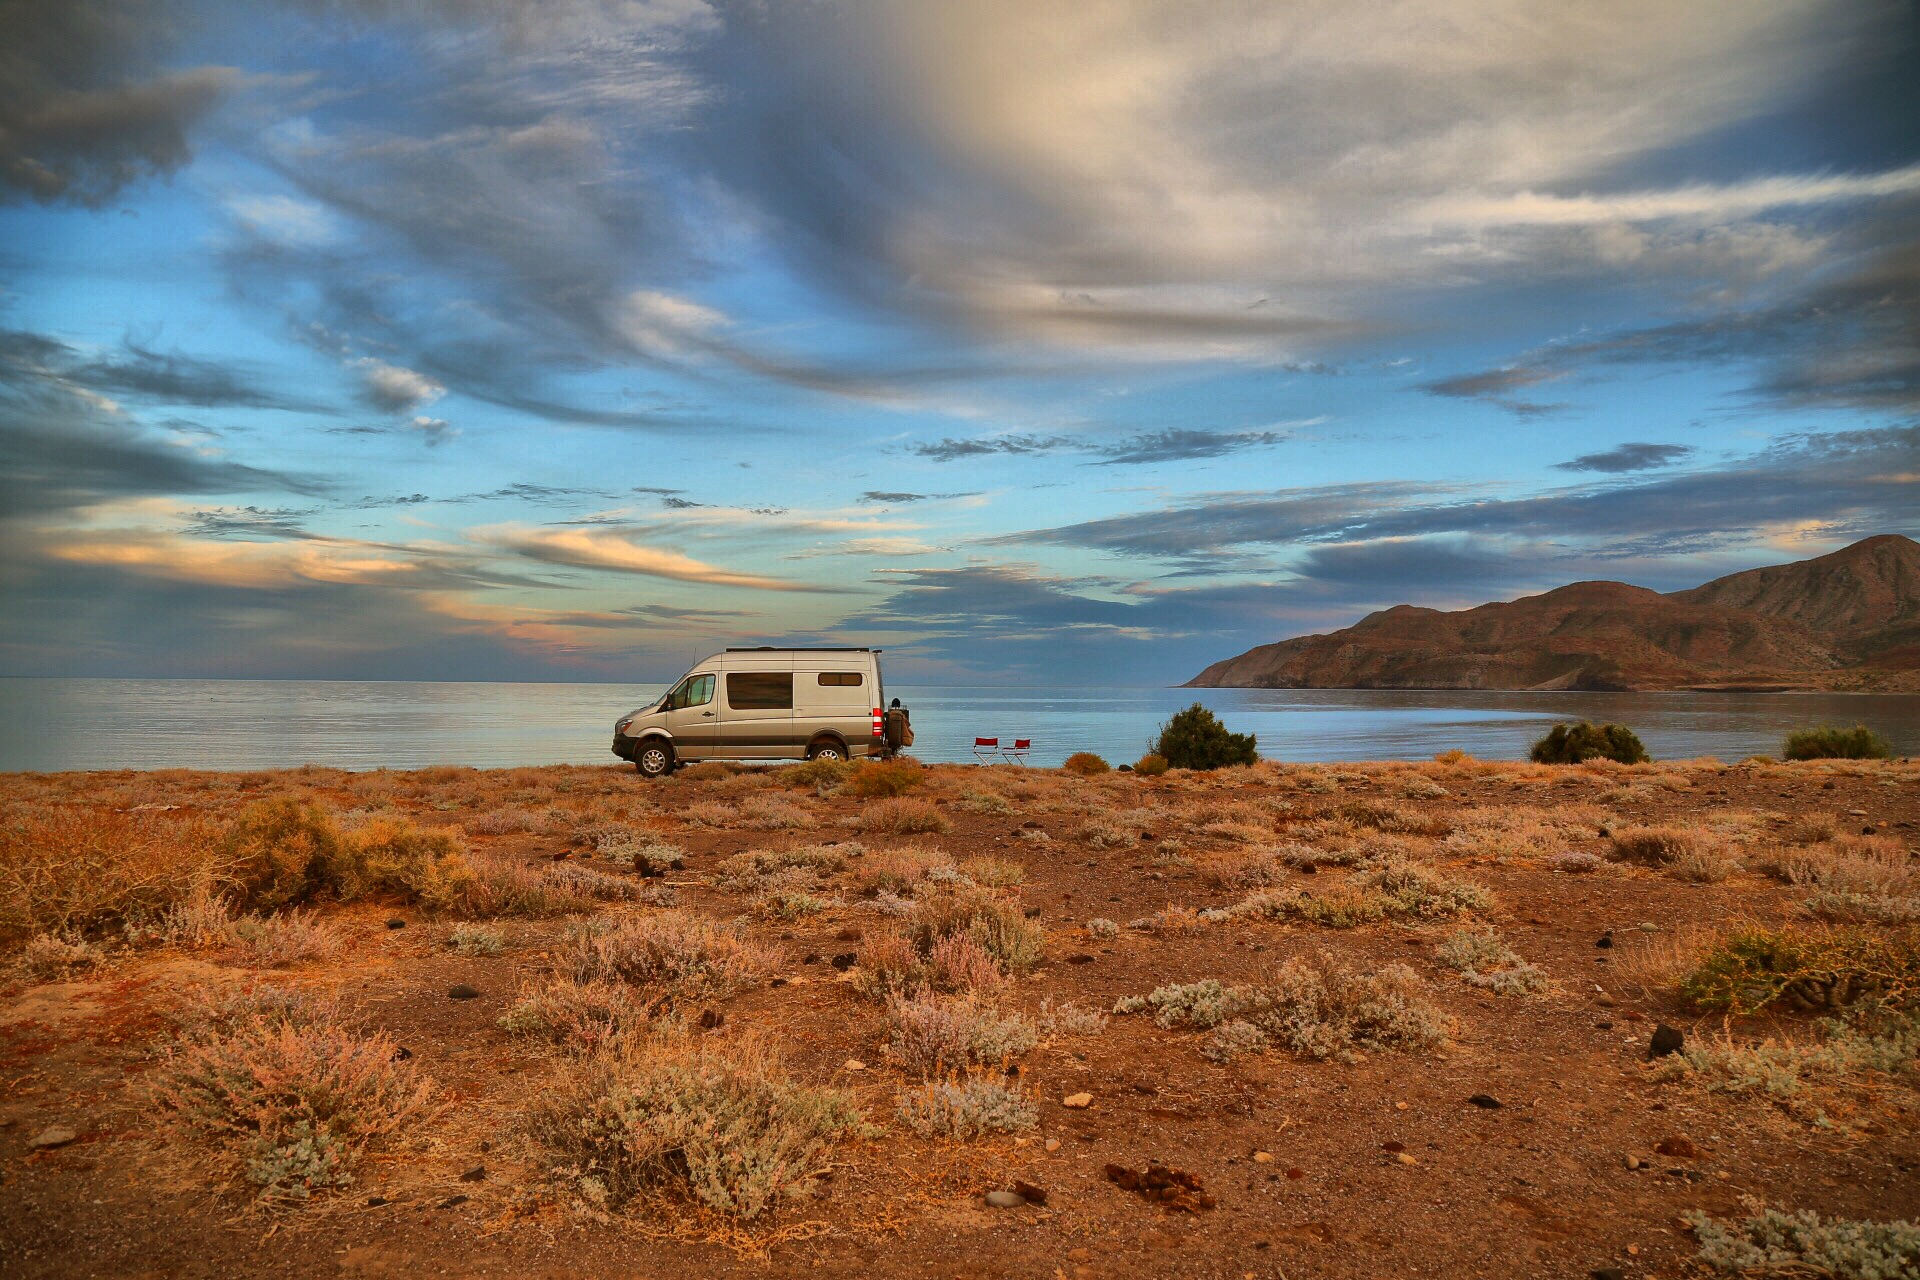 Desolate Camp, somewhere on the Sea of Cortez